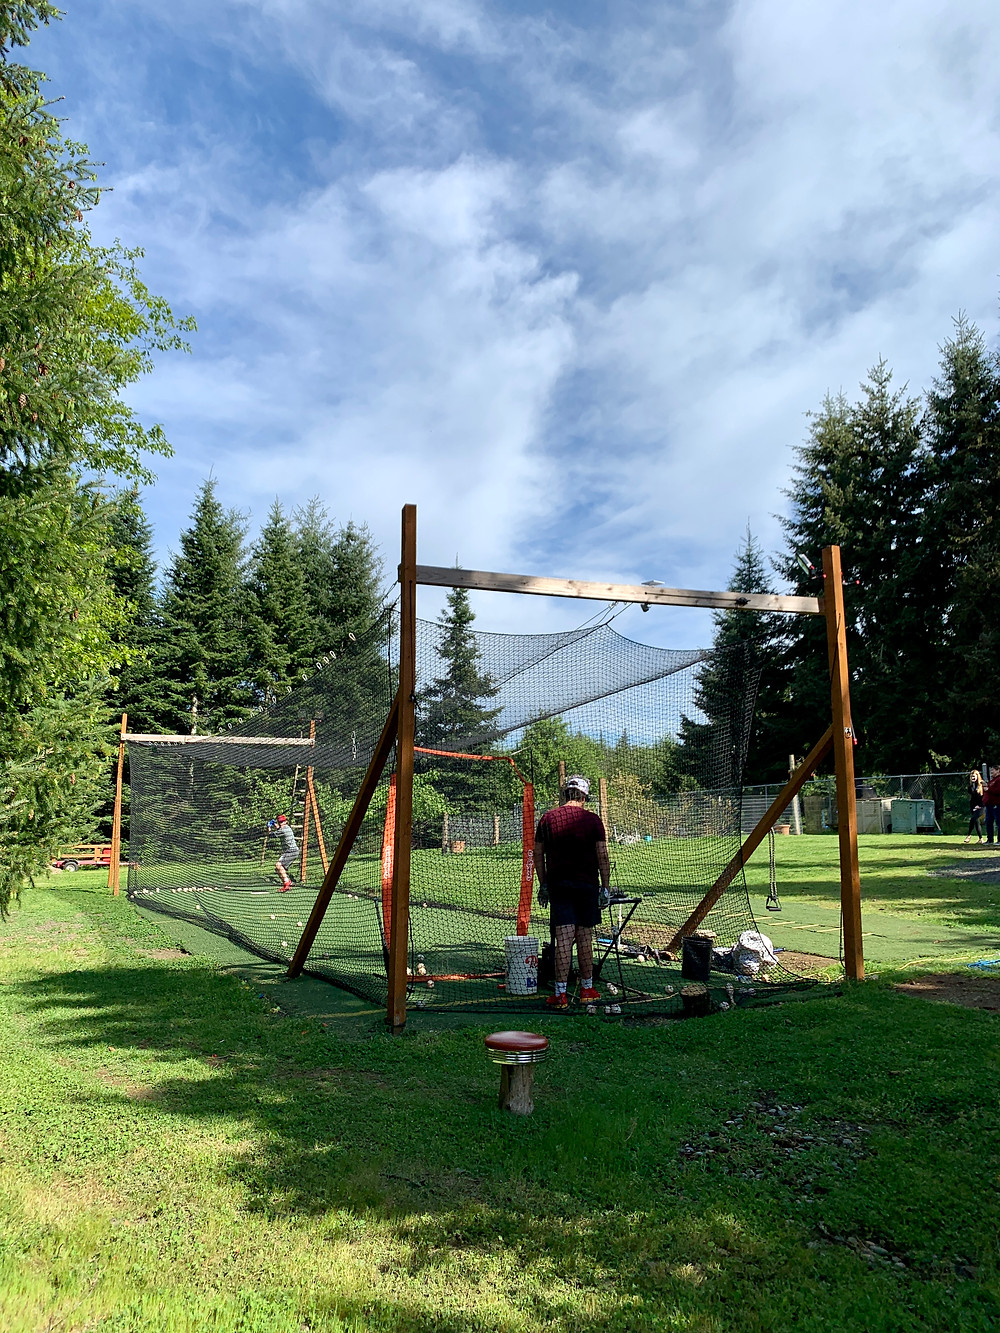 Batting cage finished product on a summer night.